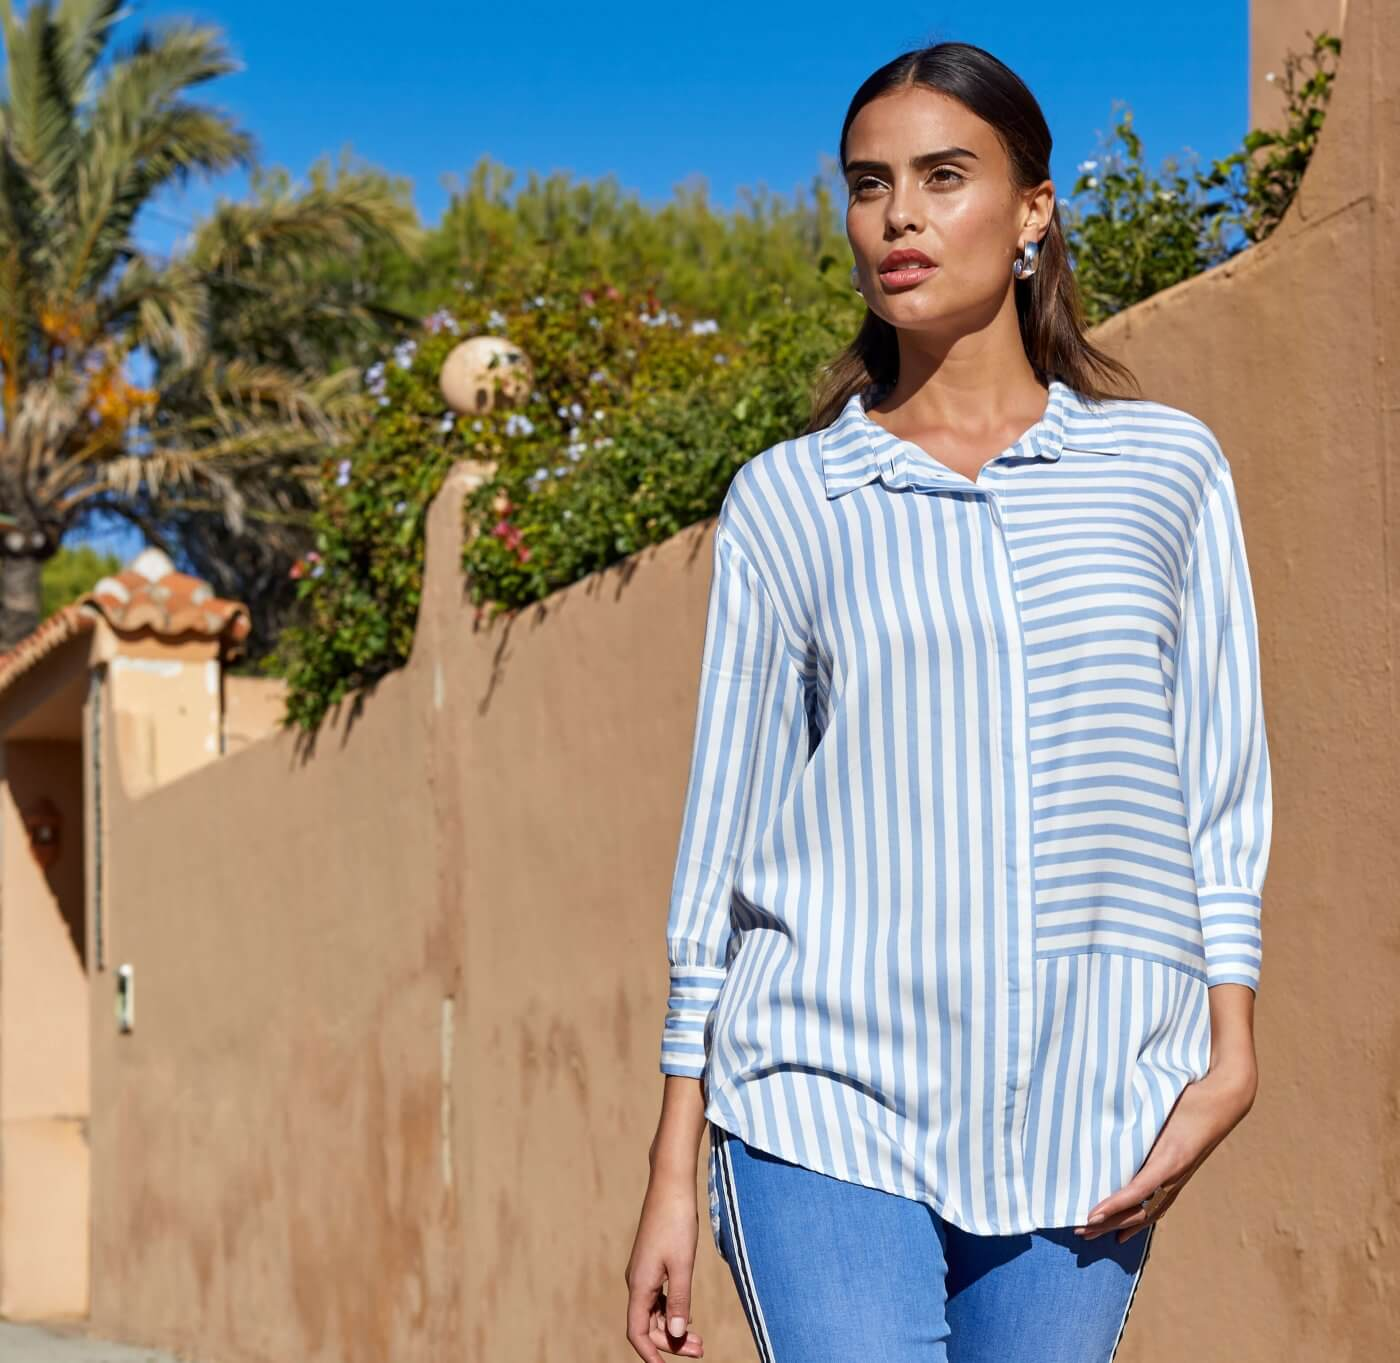 Women in Striped Shirt | The Mustcard